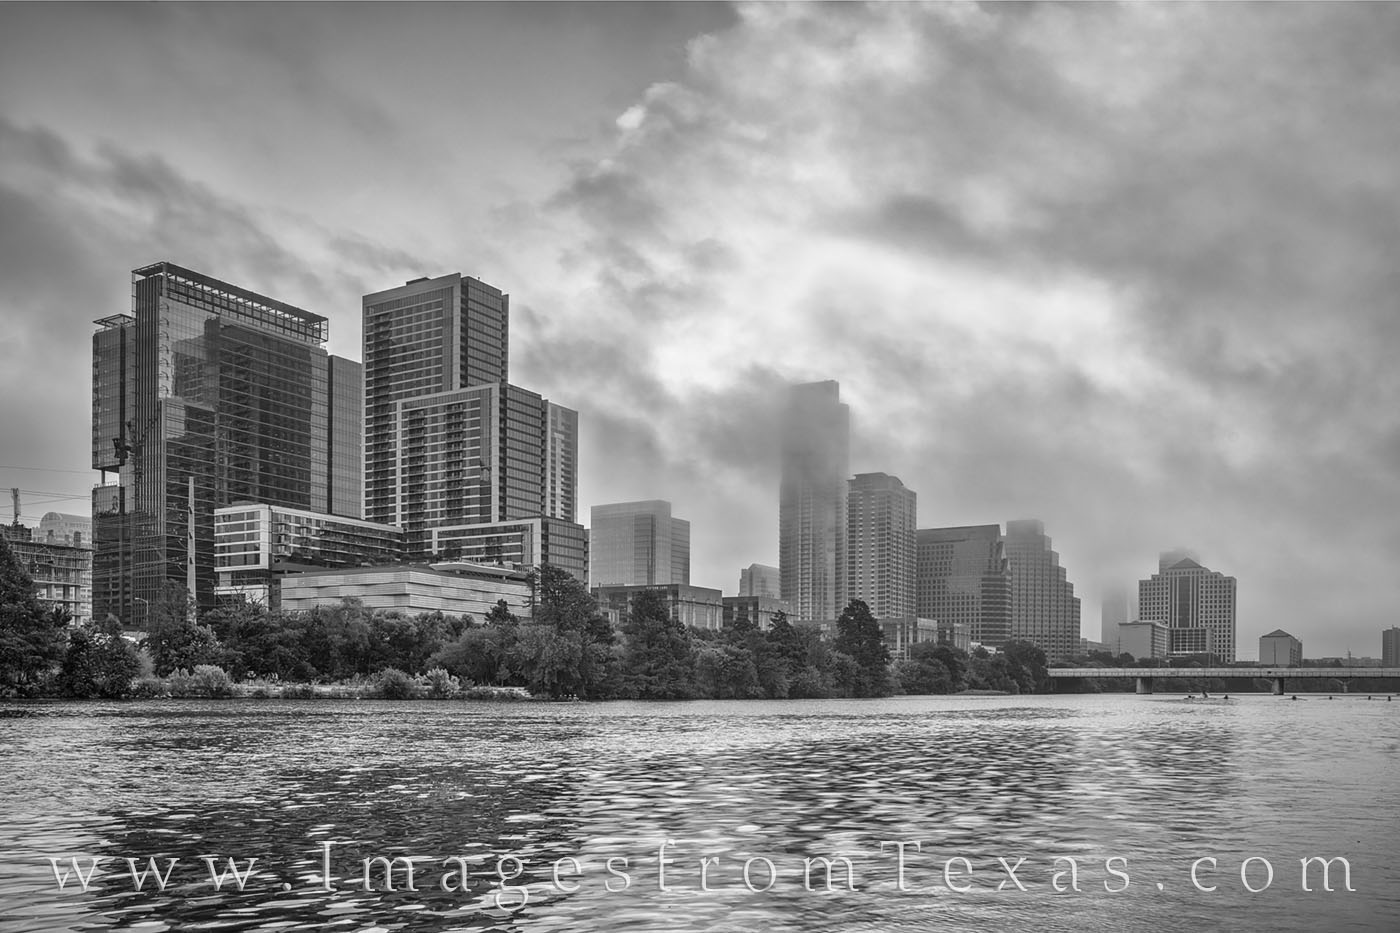 austin, austin texas, atx, austin skyline, lady bird lake, town lake, black and white, skyline, texas skyline, morning, fog, clouds, photo